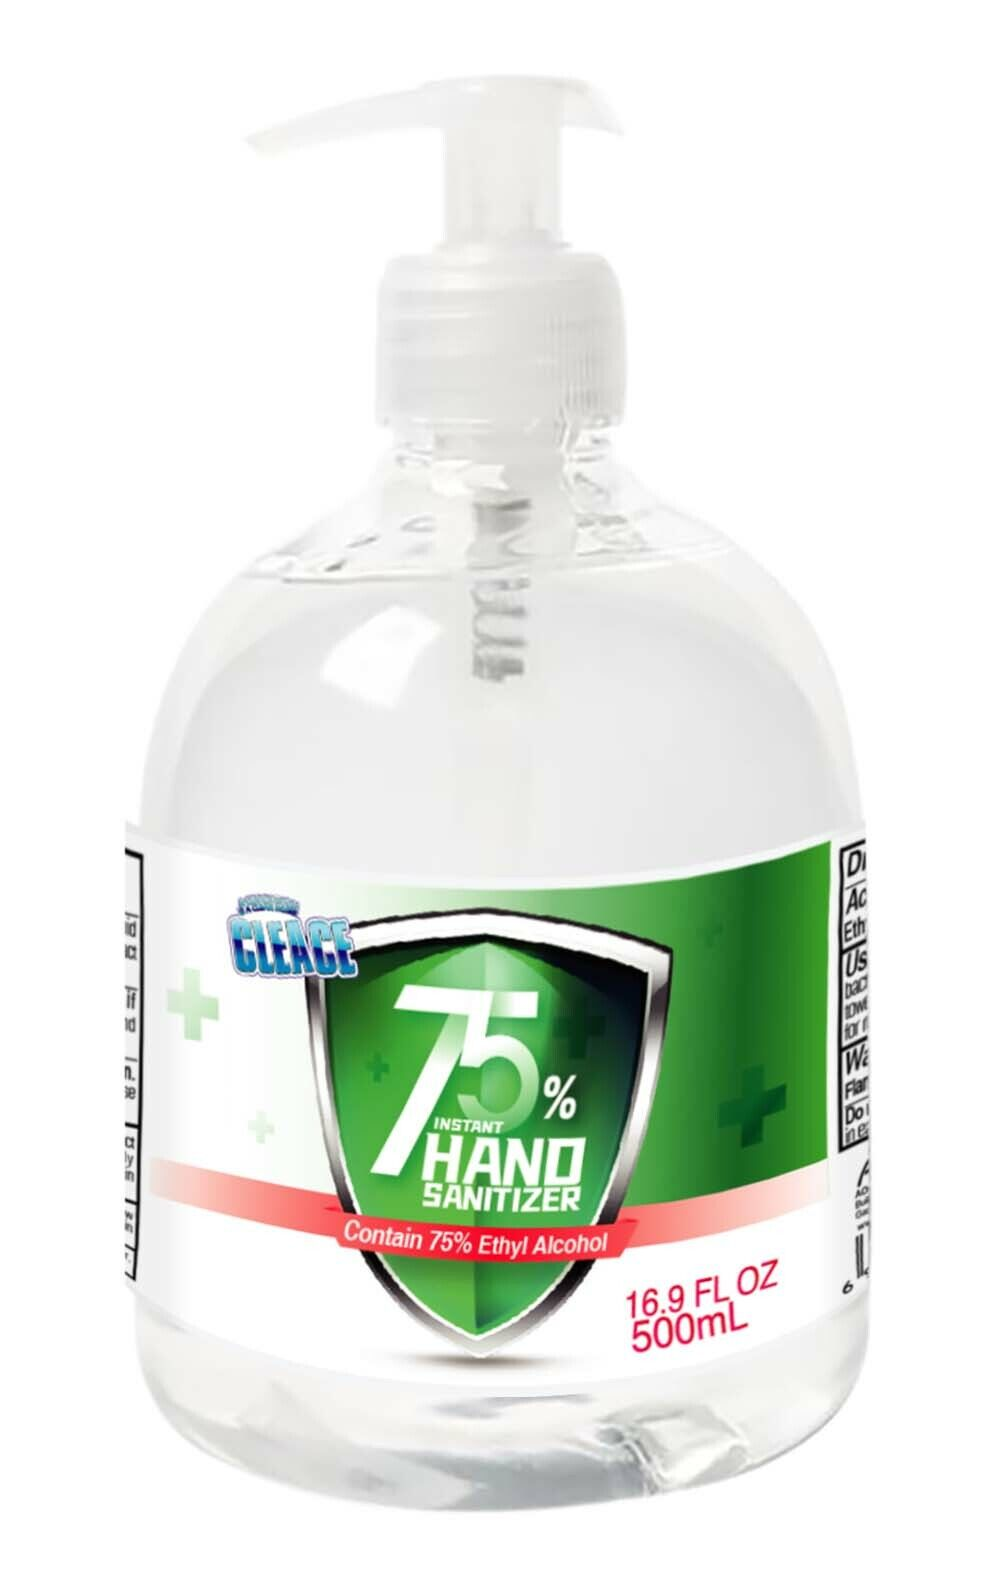 [16.9 oz] Cleace Advanced 75% Alcohol Sanitizer Gel, large 16.9 oz, up to 24PK Hand Sanitizers